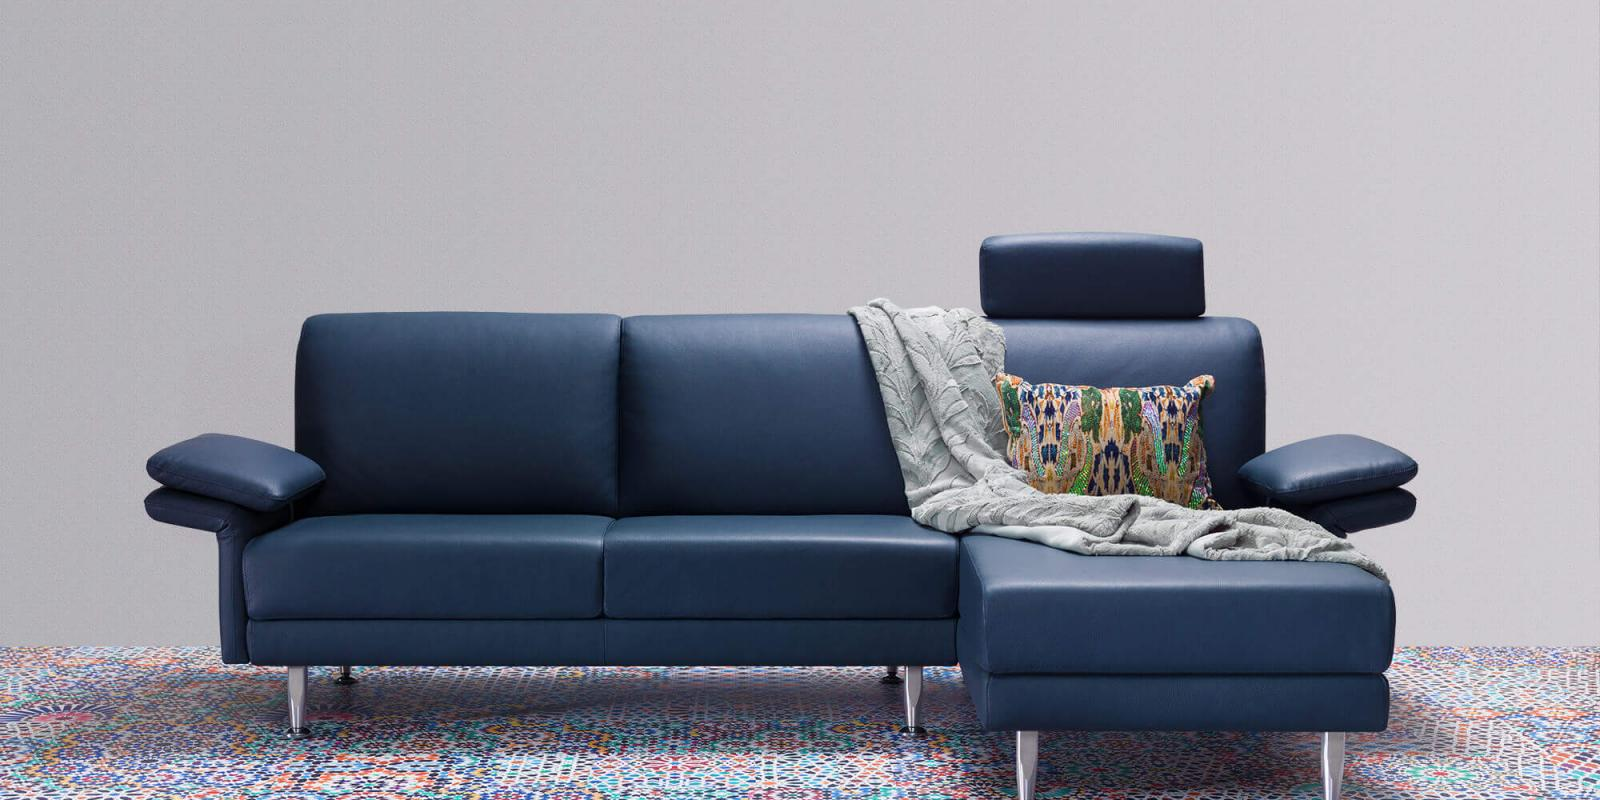 horst collection melide sofa design moebel blau leder